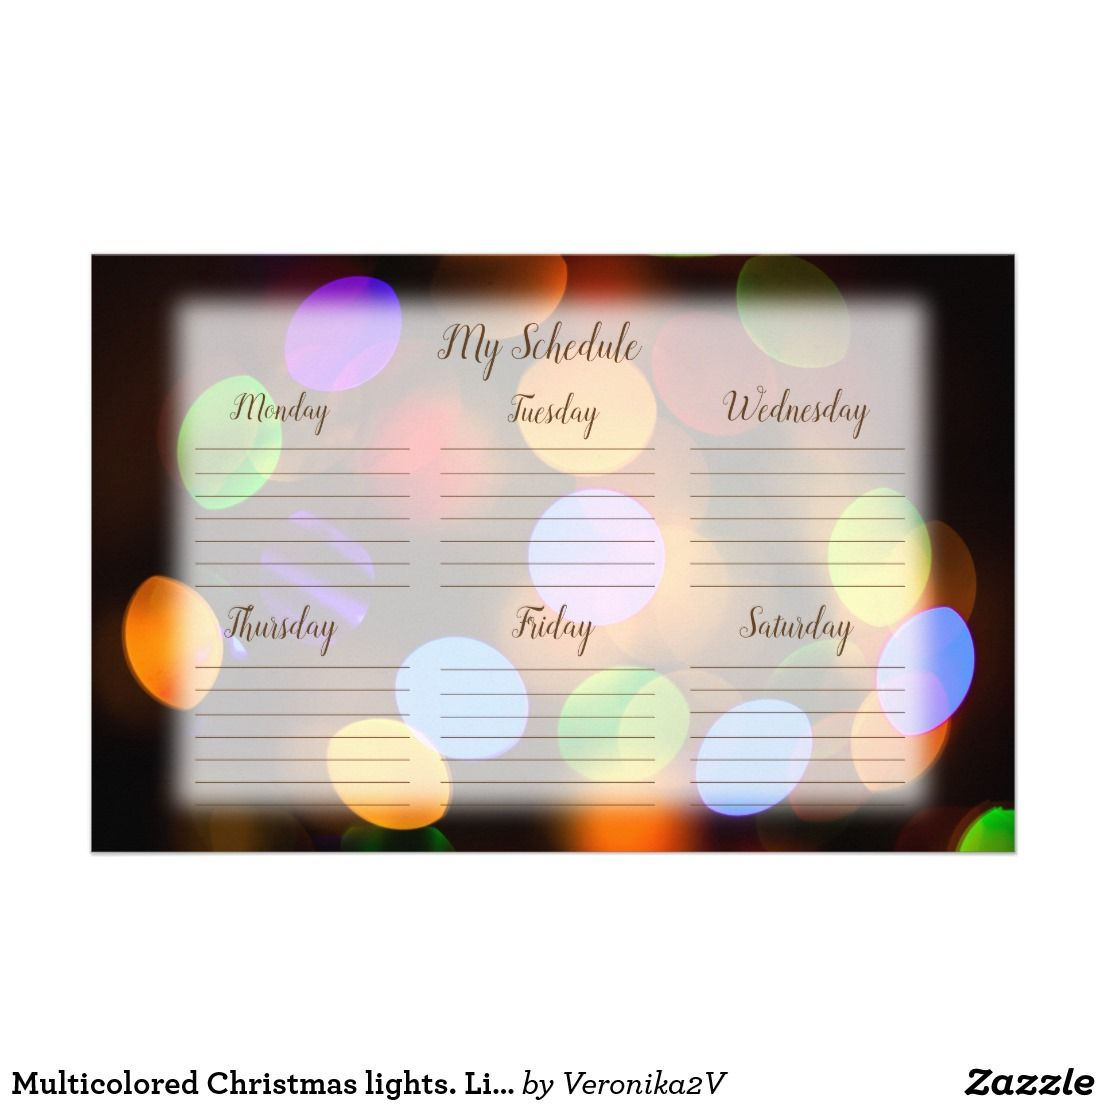 Multicolored Christmas Lights. Lined Schedule. Stationery | Zazzle.com Multicolored Christmas lights. Lined schedule. Stationery | Zazzle.com Orange Things t orange line schedule